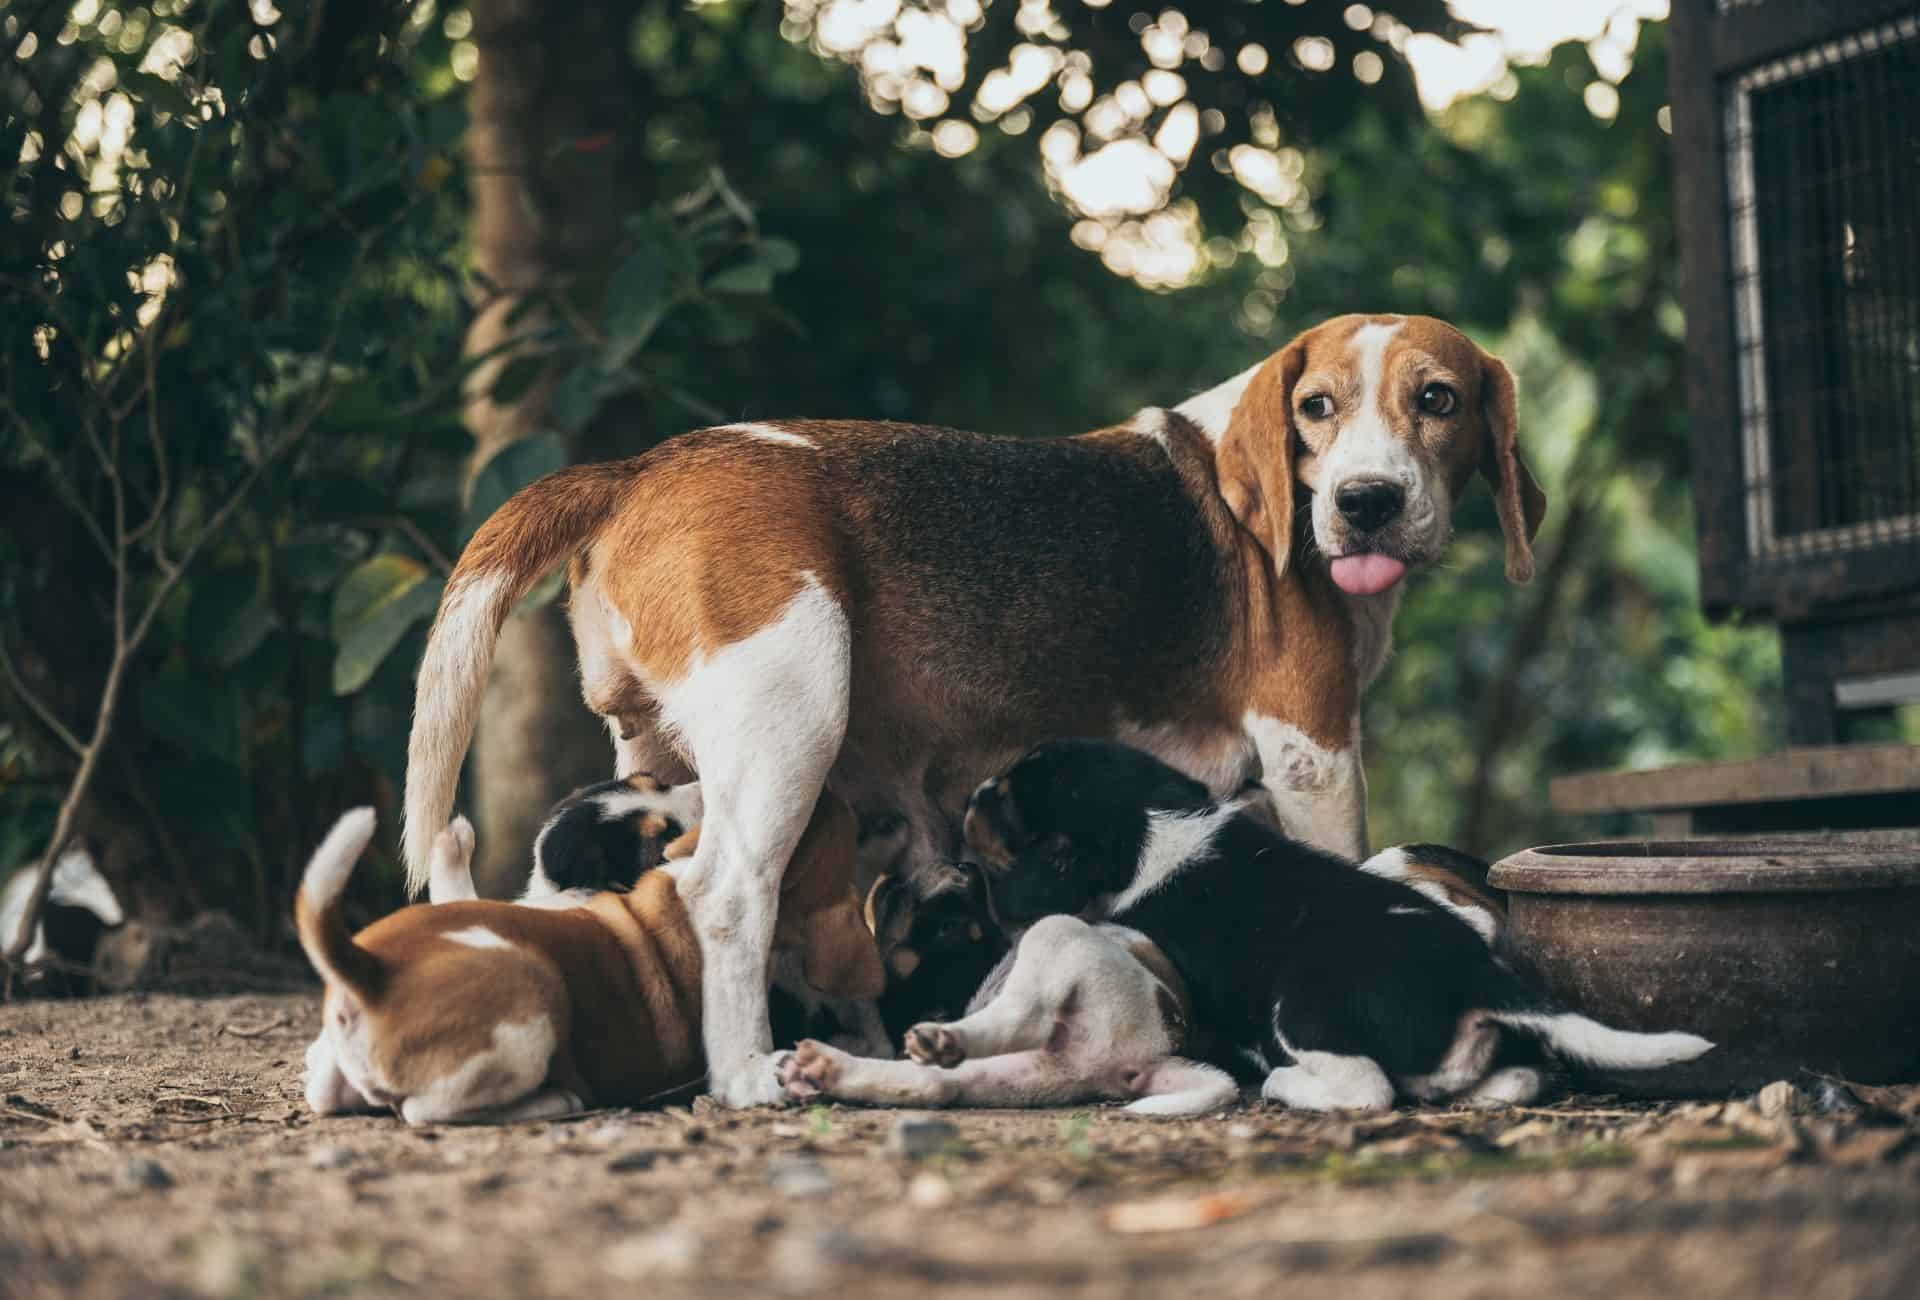 Female Beagle is outside nursing her little puppies.